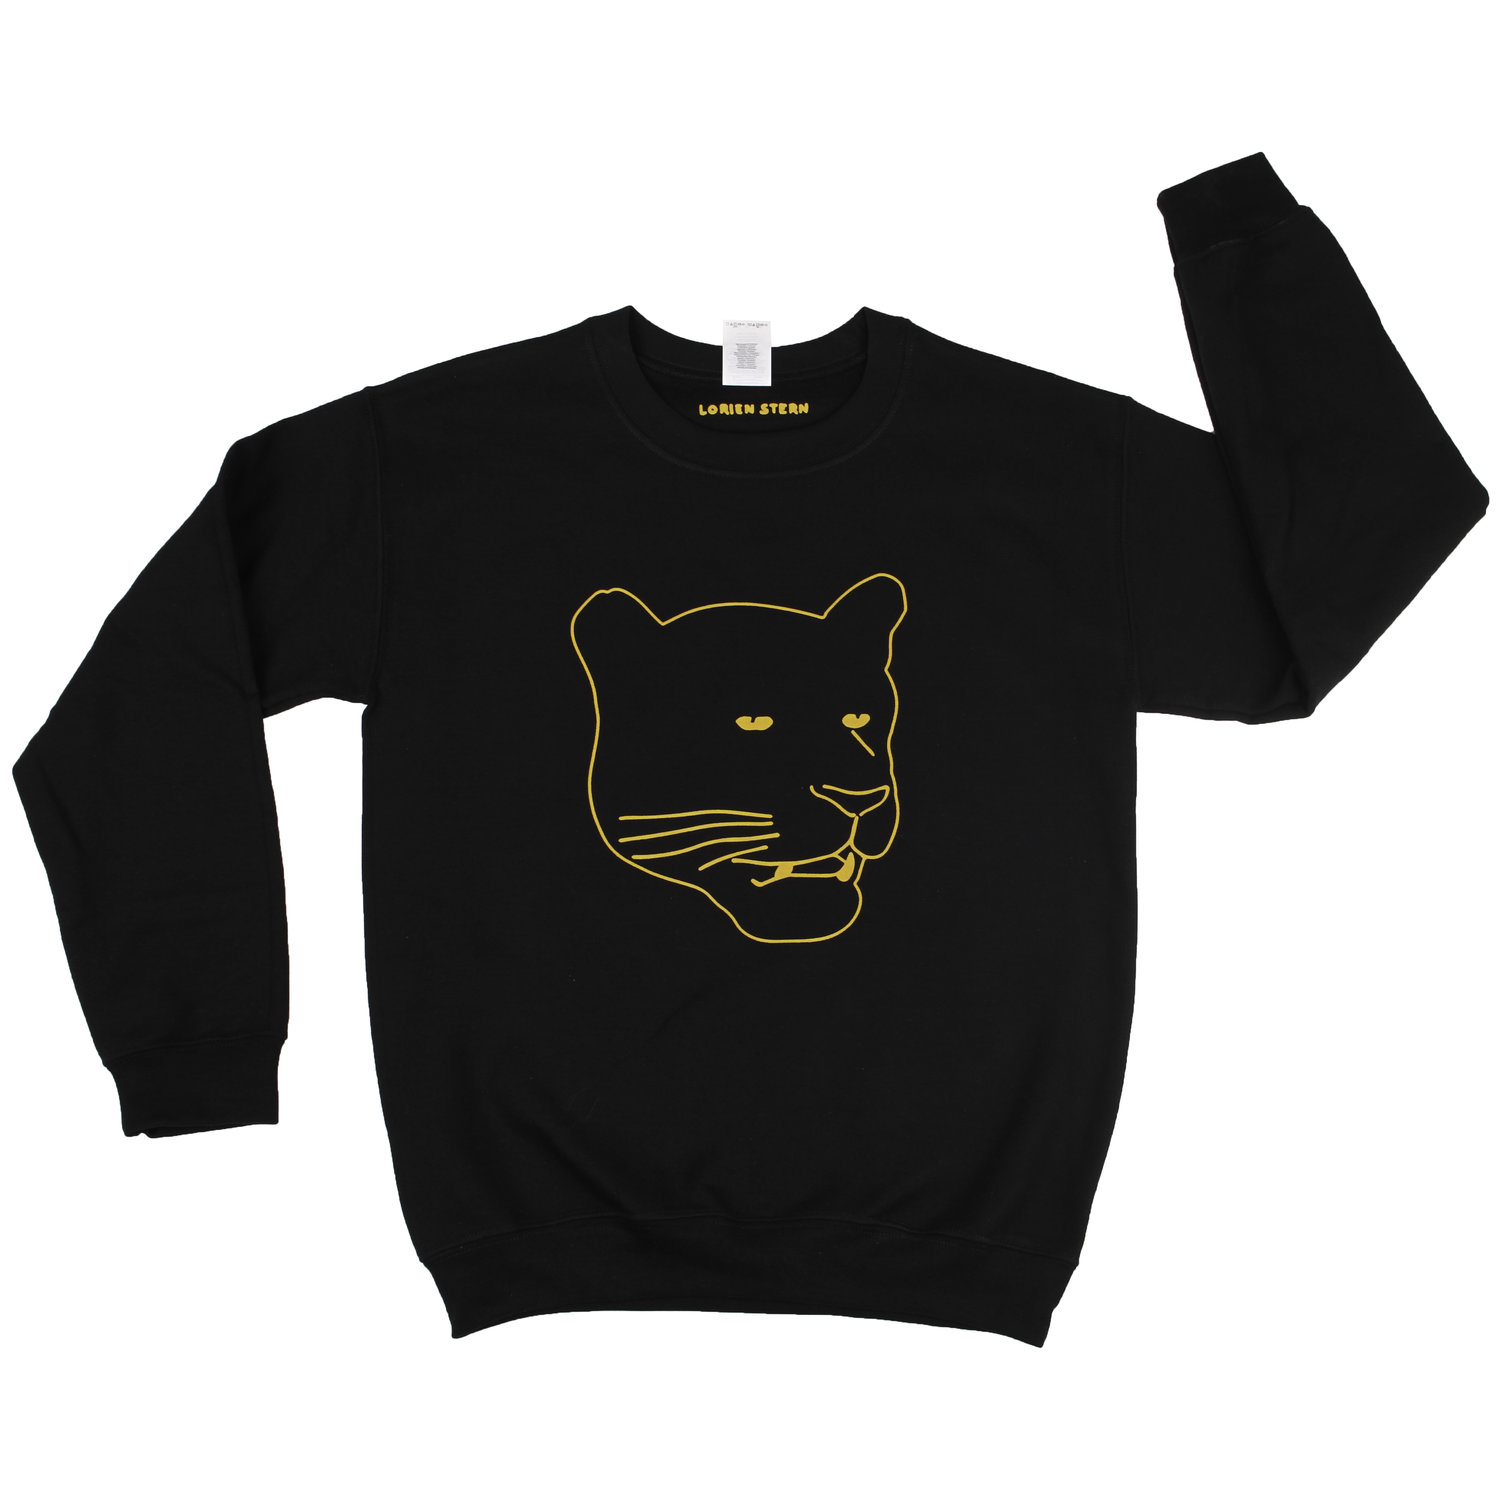 black+panther+sweatshirt.jpg